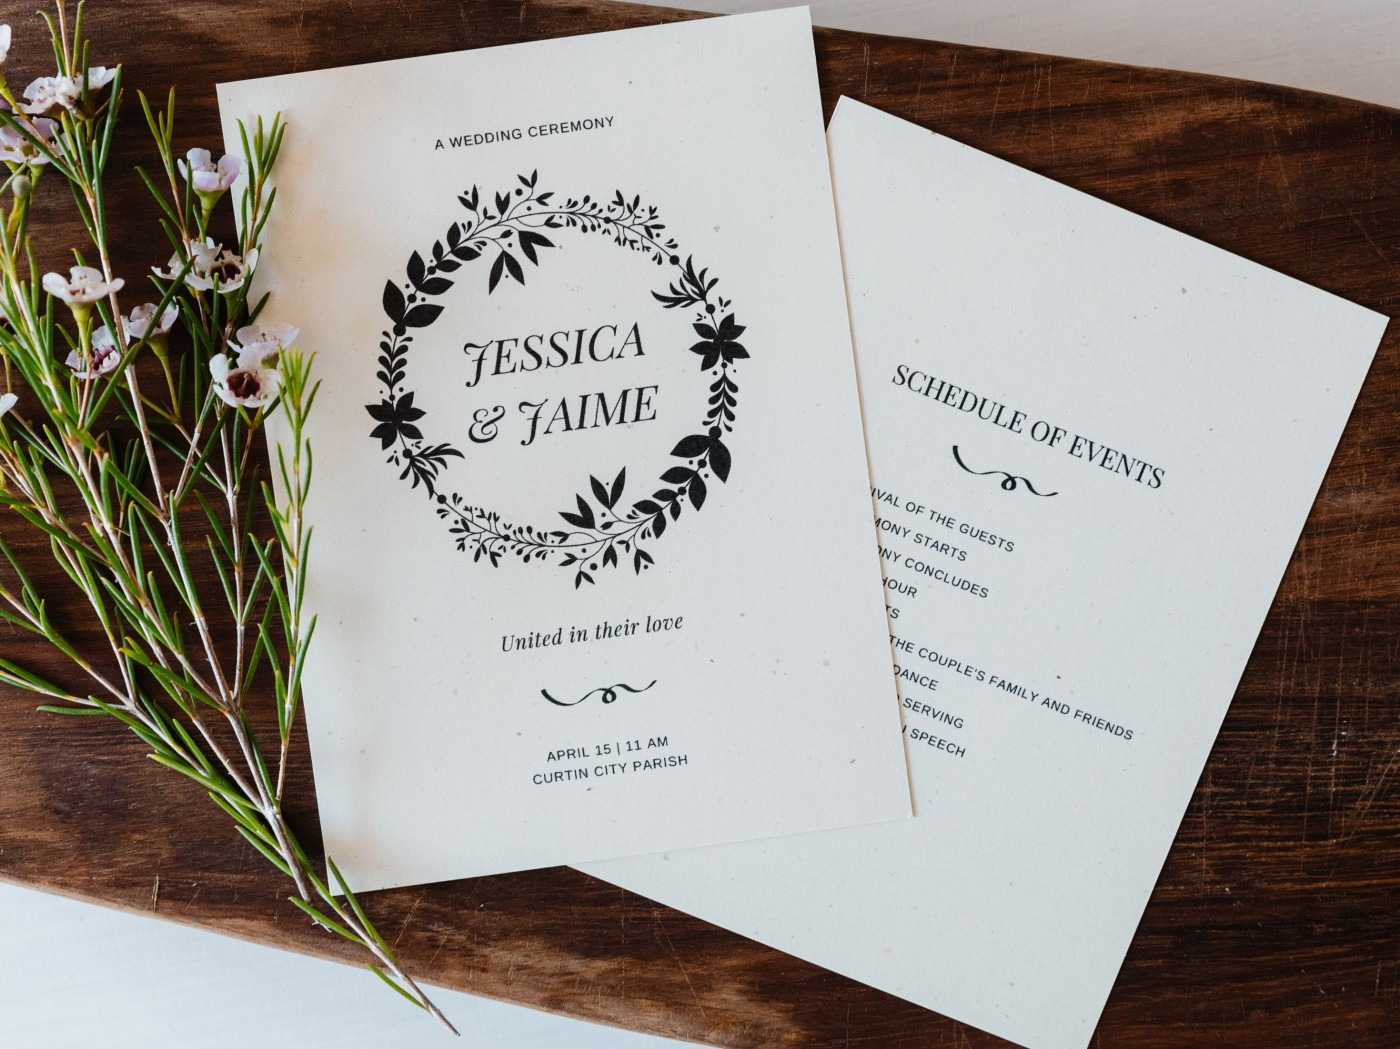 006 Exceptional Free Template For Wedding Ceremony Program Example 1400